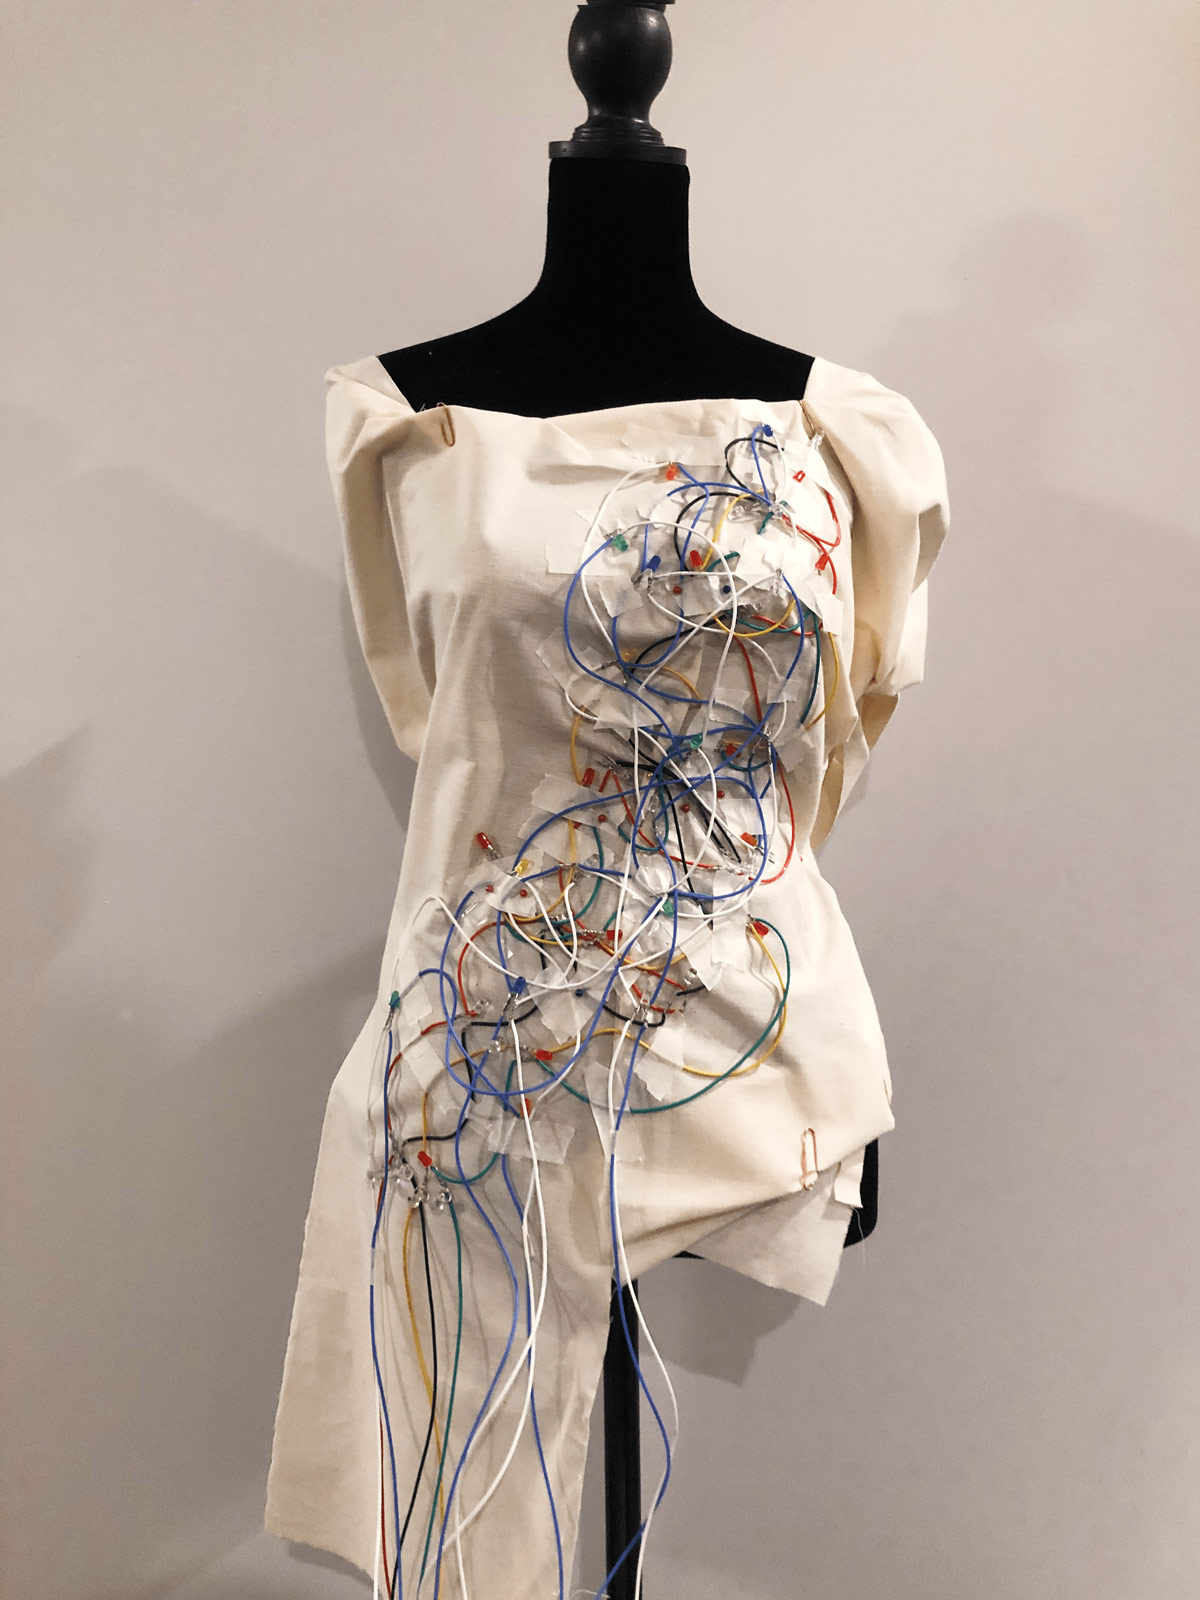 garment shows exposed wiring detail